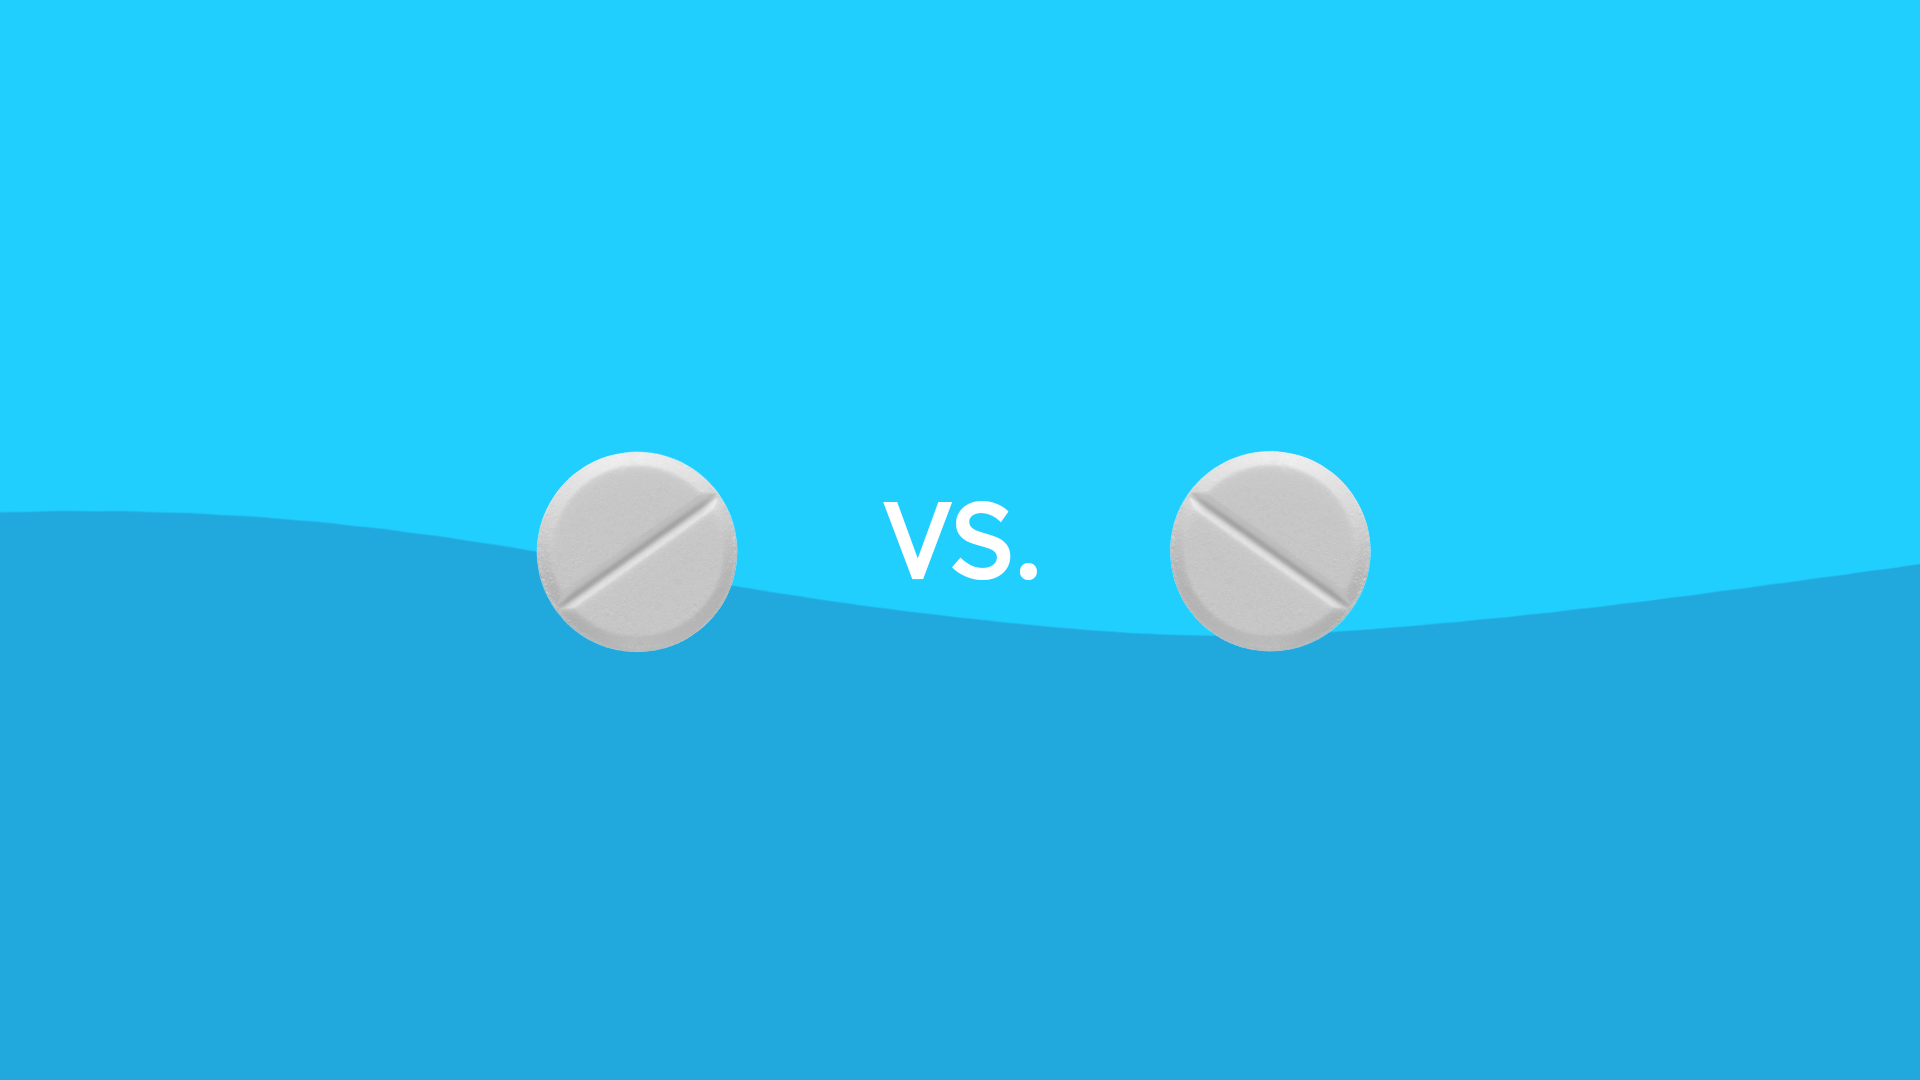 Cialis vs. Viagra: Differences, similarities, and which is better for you